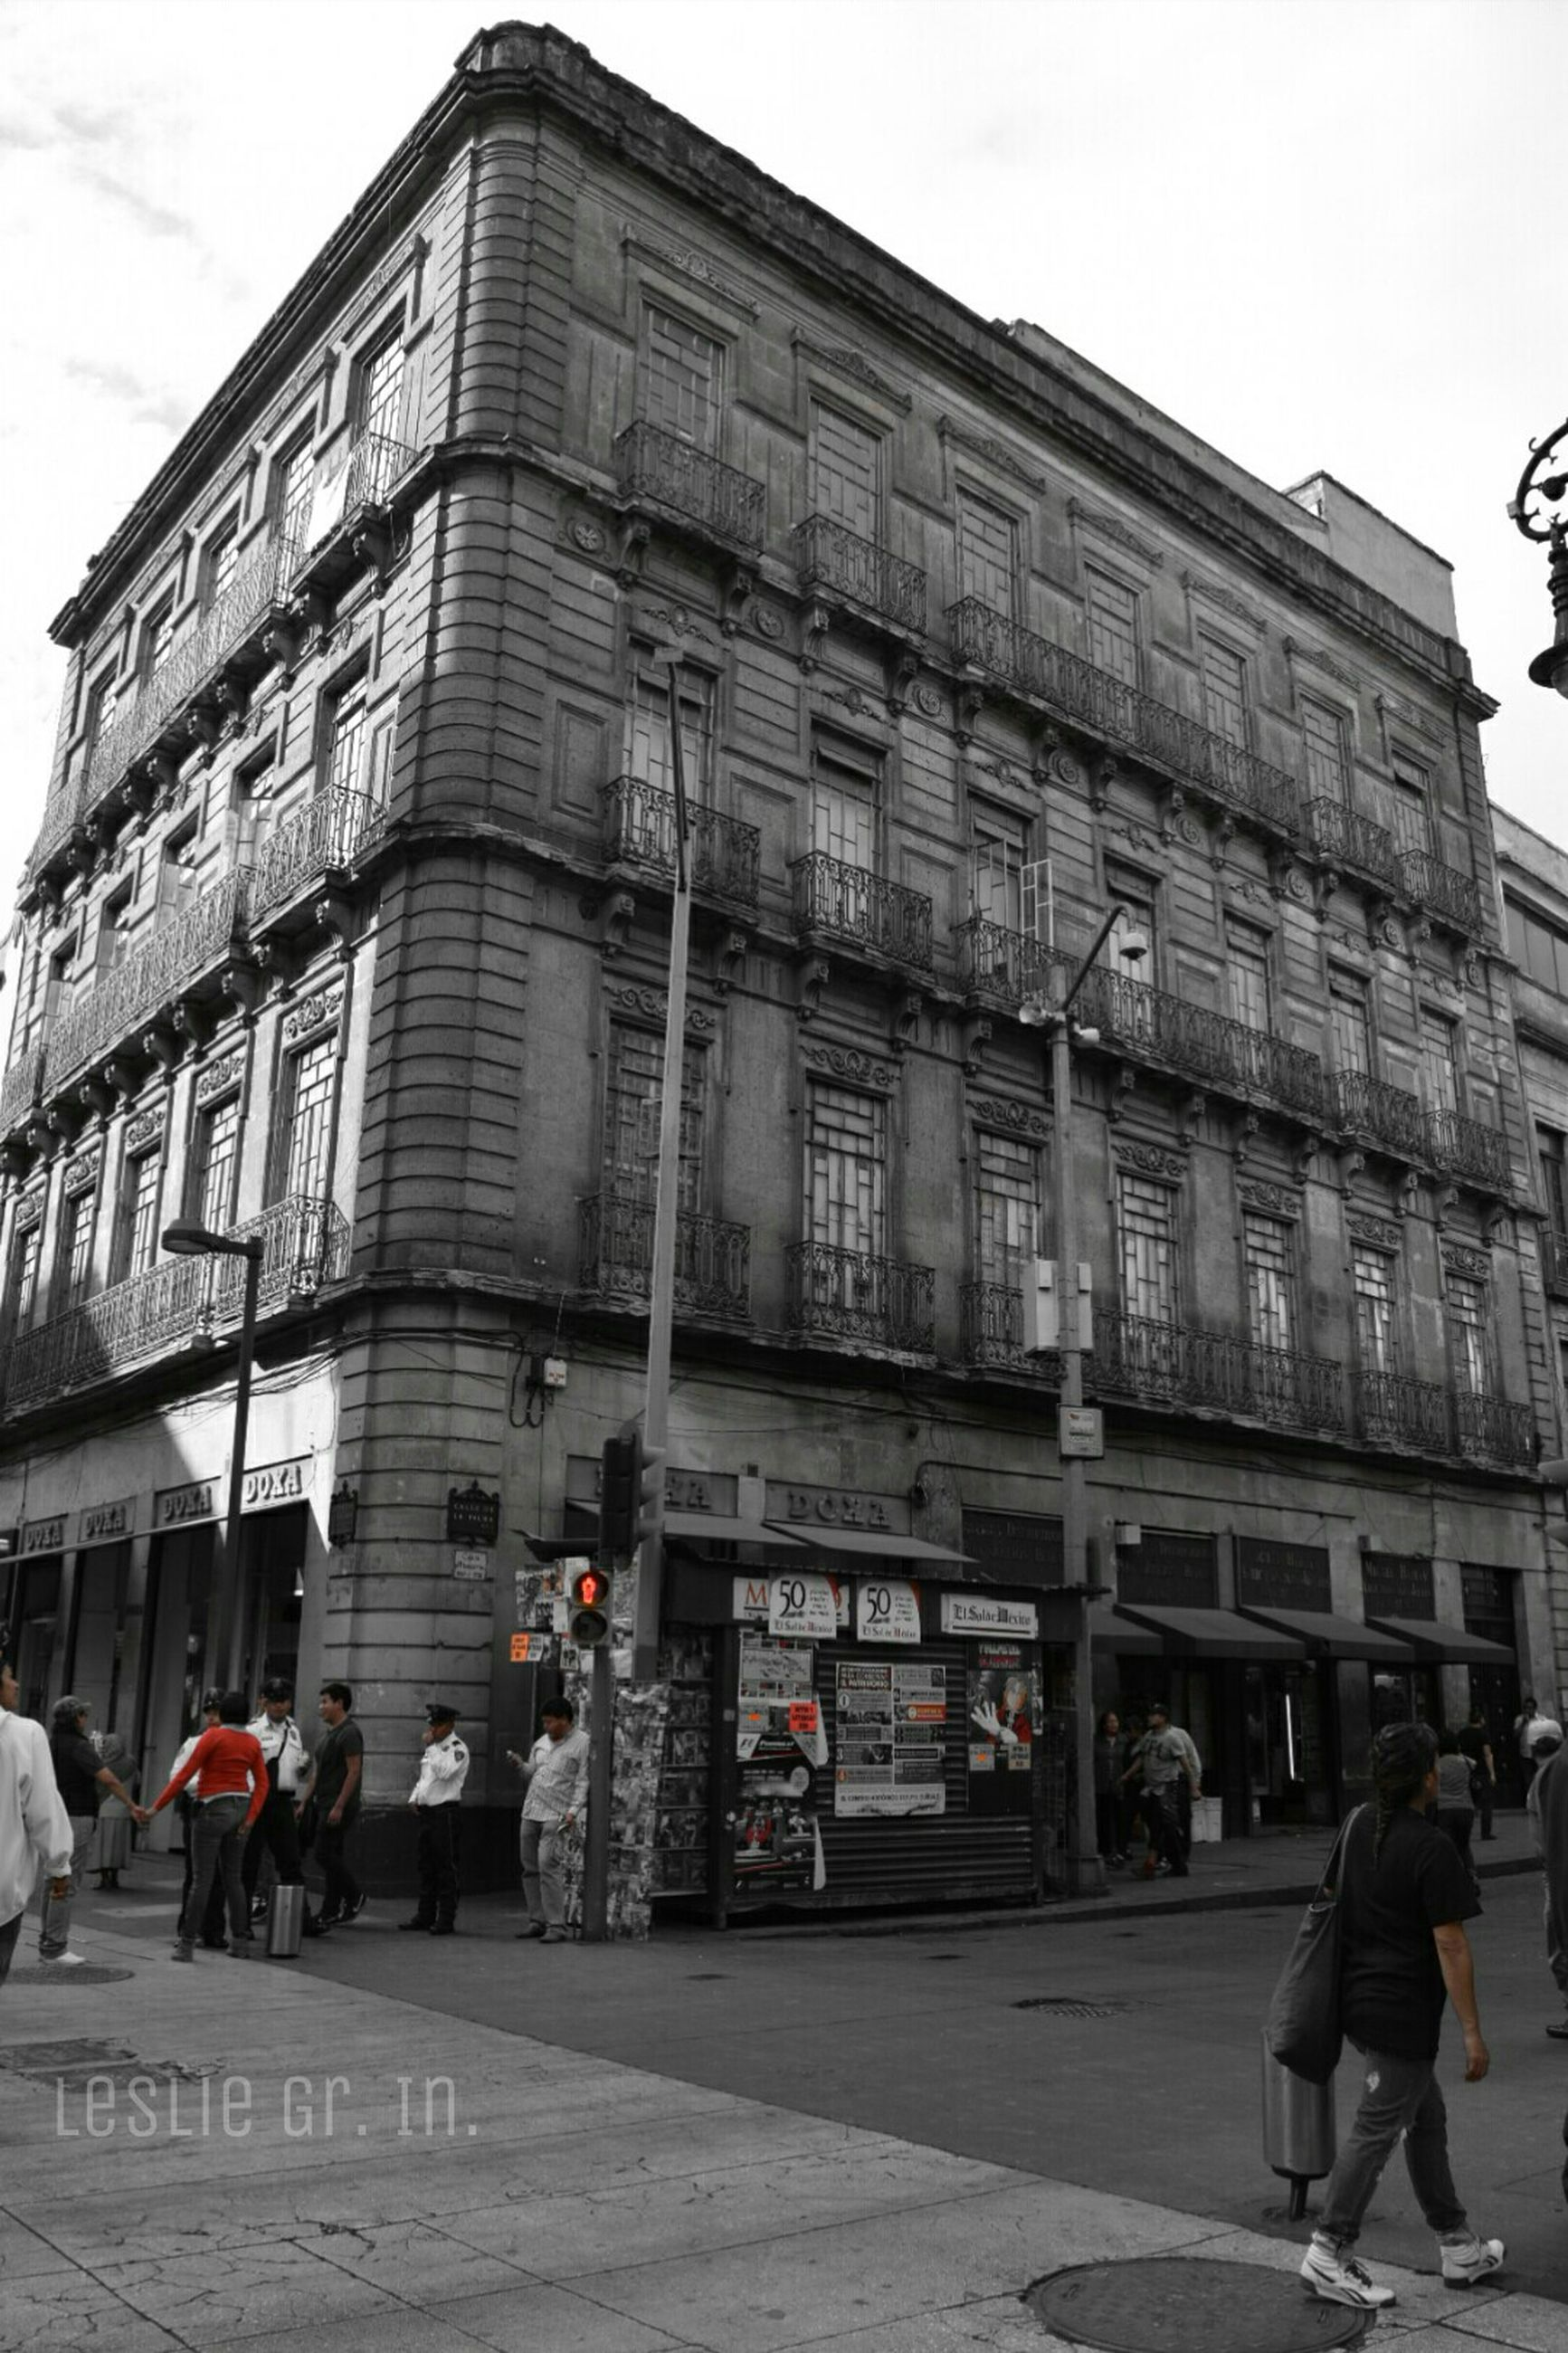 architecture, building exterior, built structure, men, city, street, person, city life, walking, building, lifestyles, sky, large group of people, transportation, day, incidental people, outdoors, road, city street